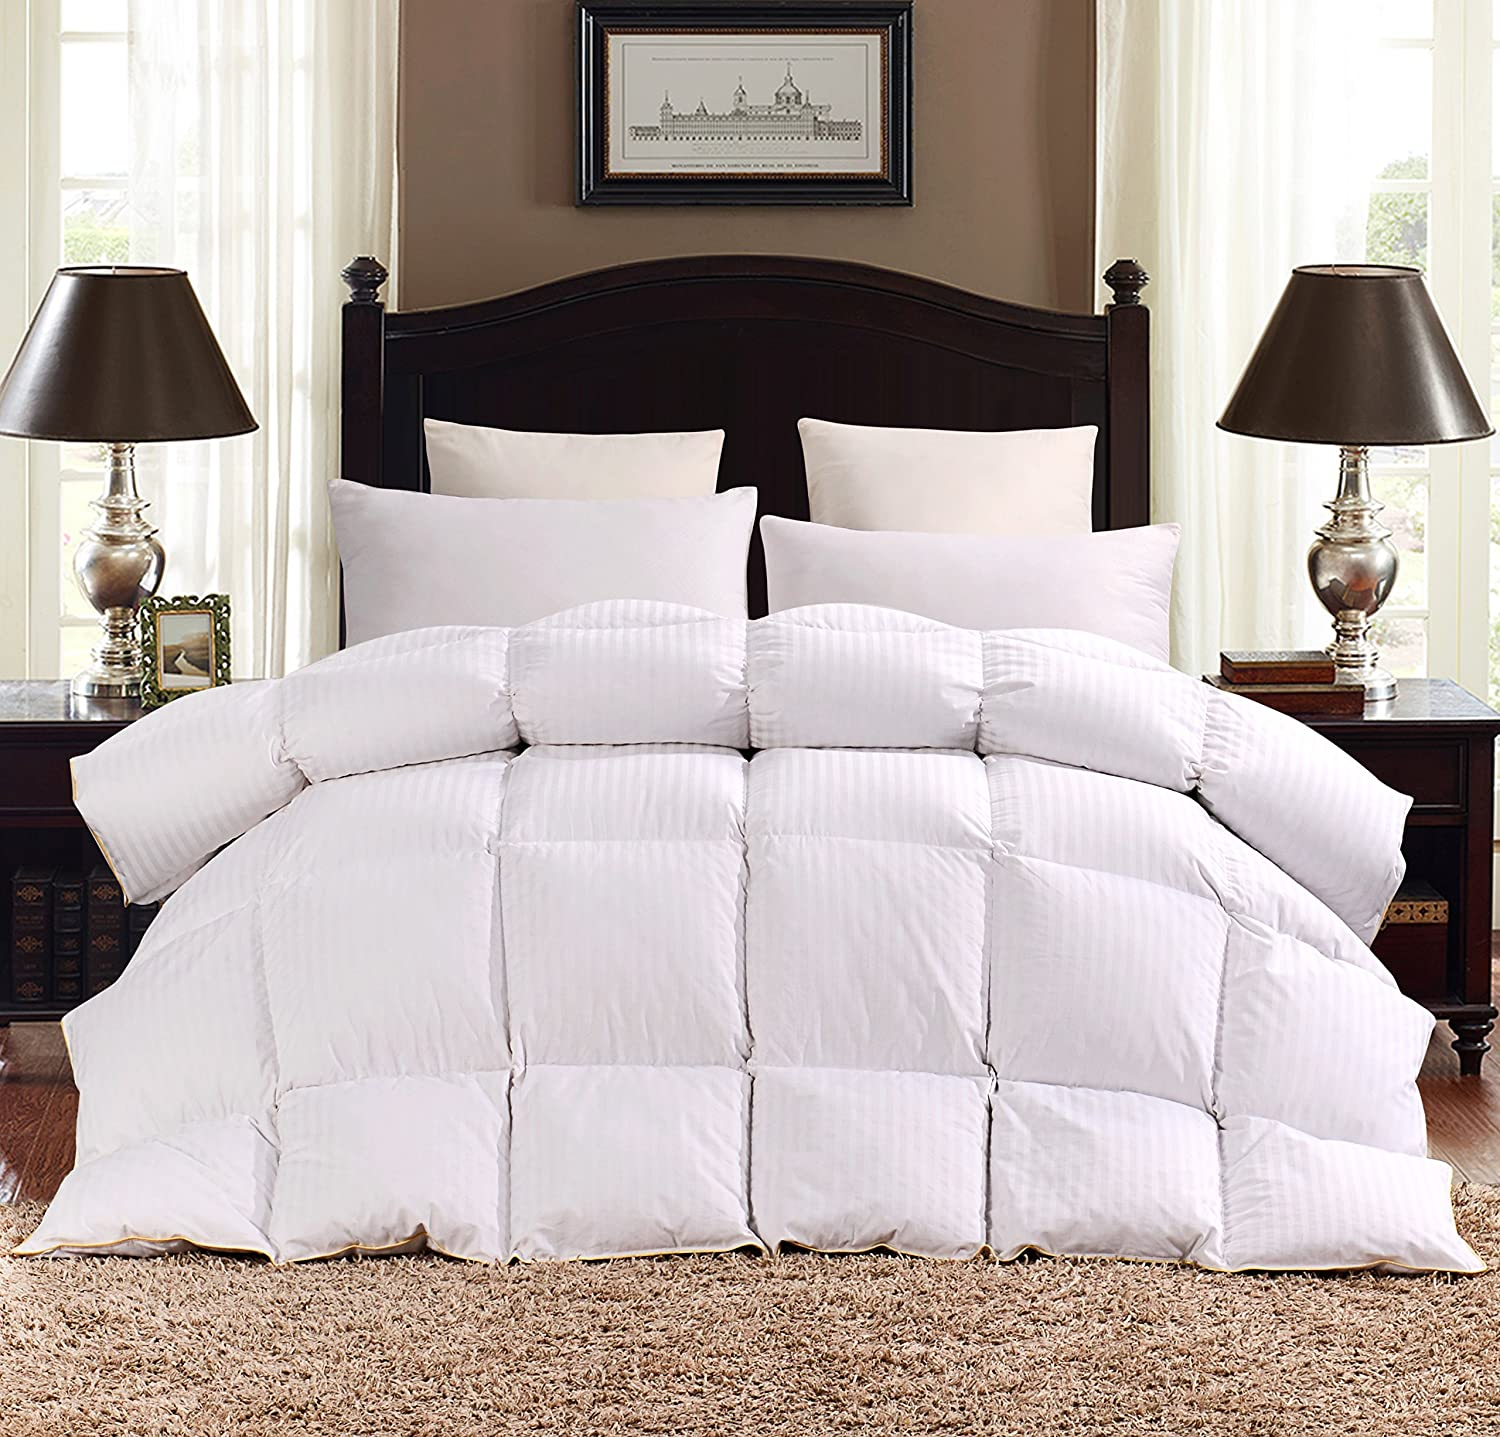 luxury lightweight climates best comforter alternative for insert duvet warm king goose fluffy bedroom black white filled pacific comforters on and heavy queen down duvets